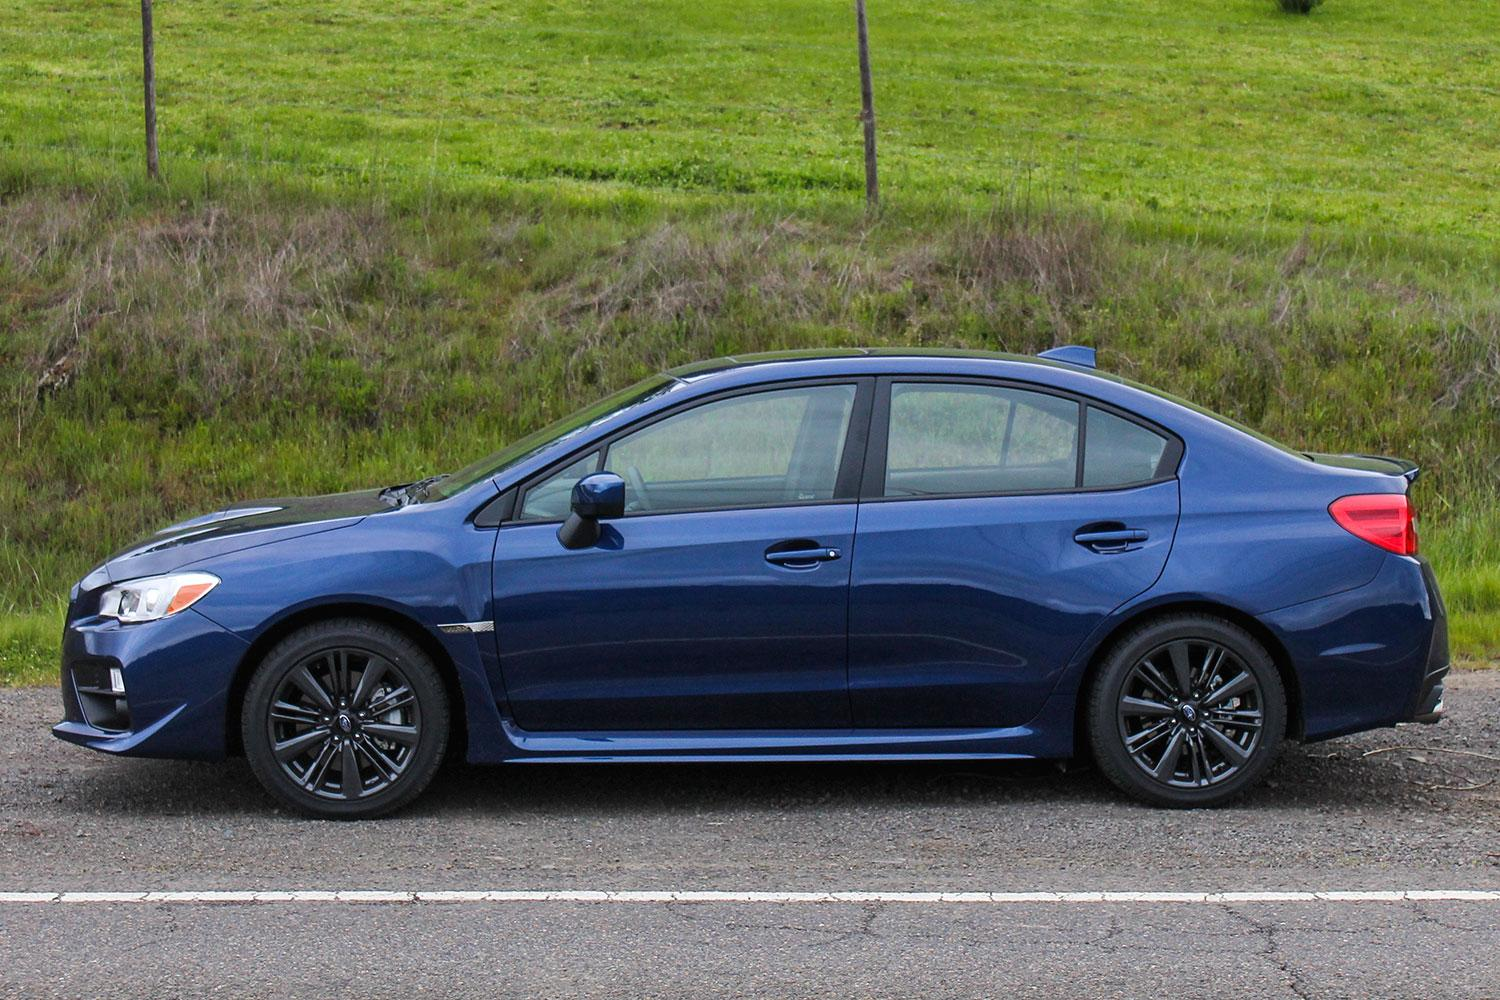 2015 Subaru WRX Review | Digital Trends